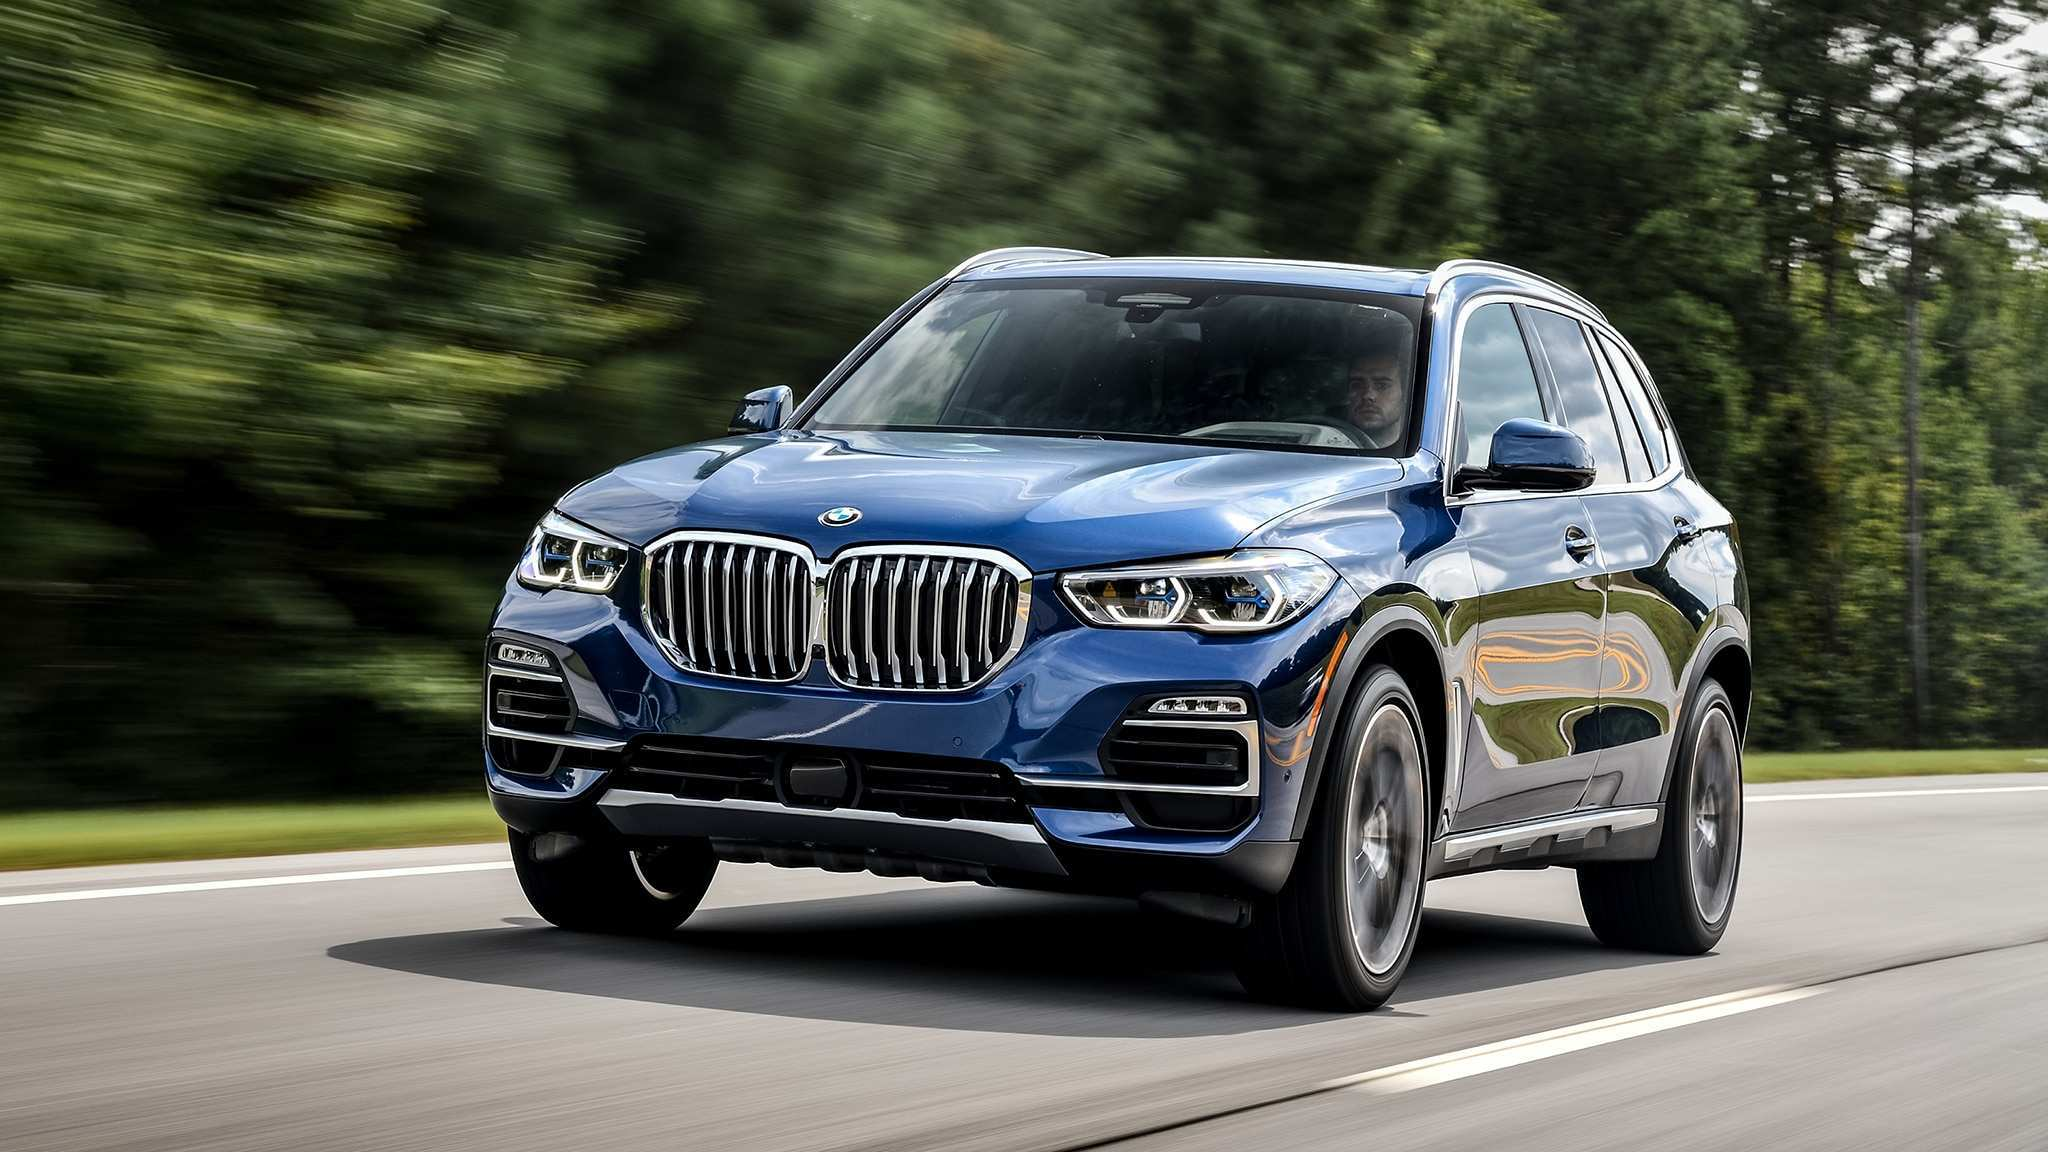 78 The 2019 Bmw Terrain Gas Mileage Overview with 2019 Bmw Terrain Gas Mileage